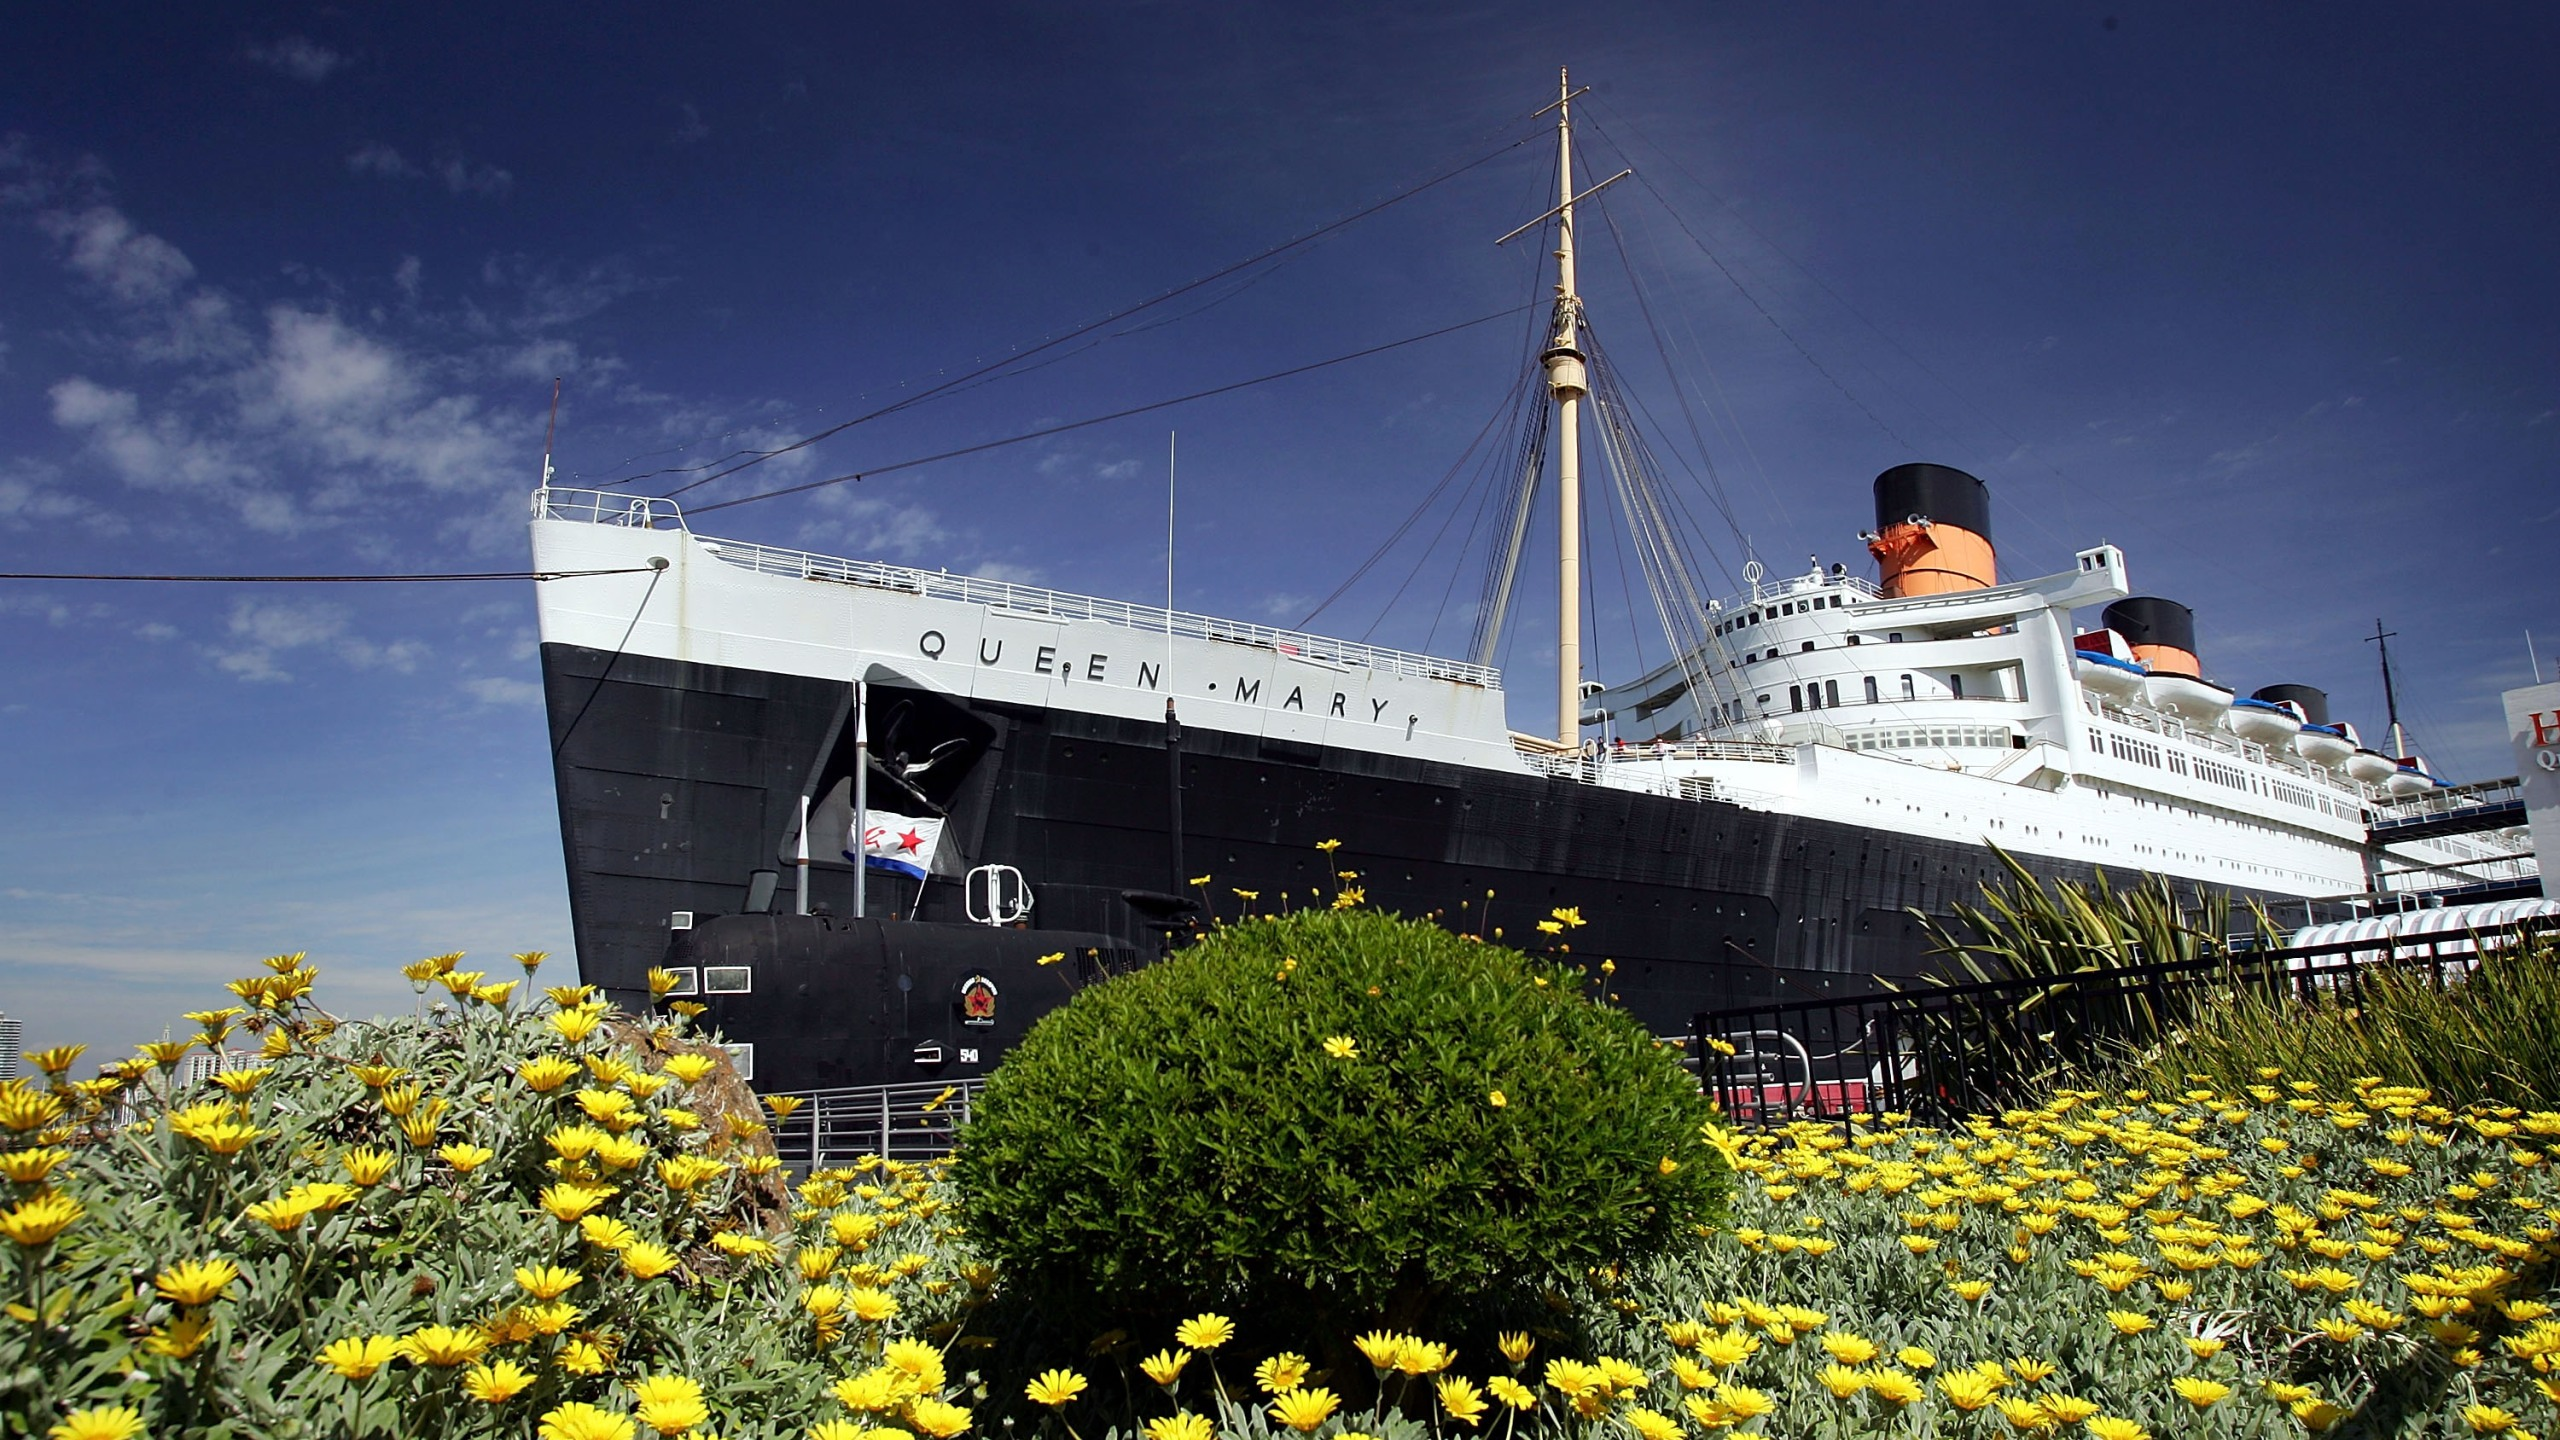 The Queen Mary, a historic ocean liner that was docked and turned into a tourist attraction 37 years ago, is seen where it still serves as a hotel and exhibit on March 21, 2005, in Long Beach, California. (David McNew/Getty Images)